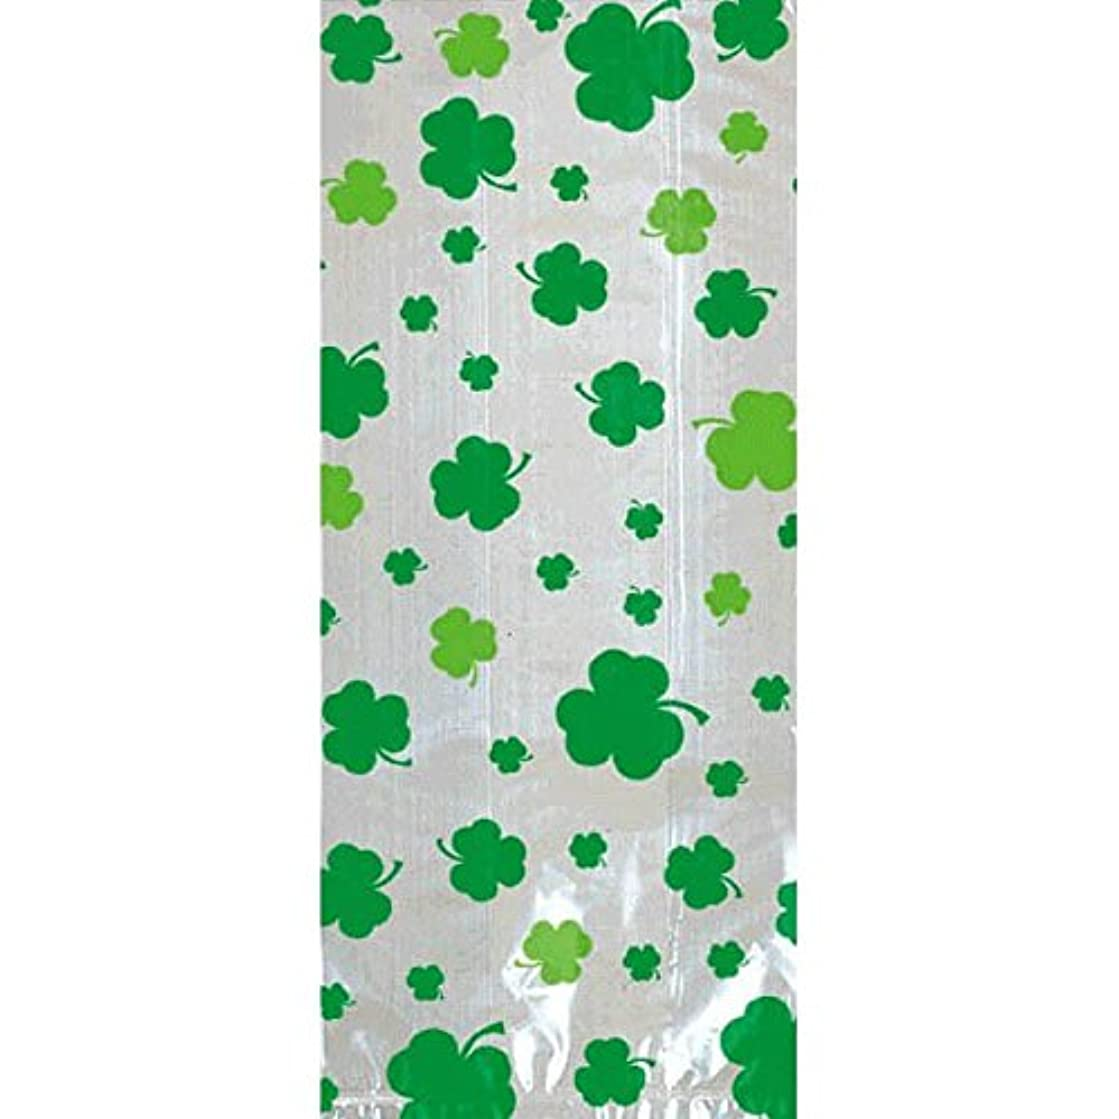 Amscan 378965 St. Patrick's Day Large Cello Party Bags, 11 1/2